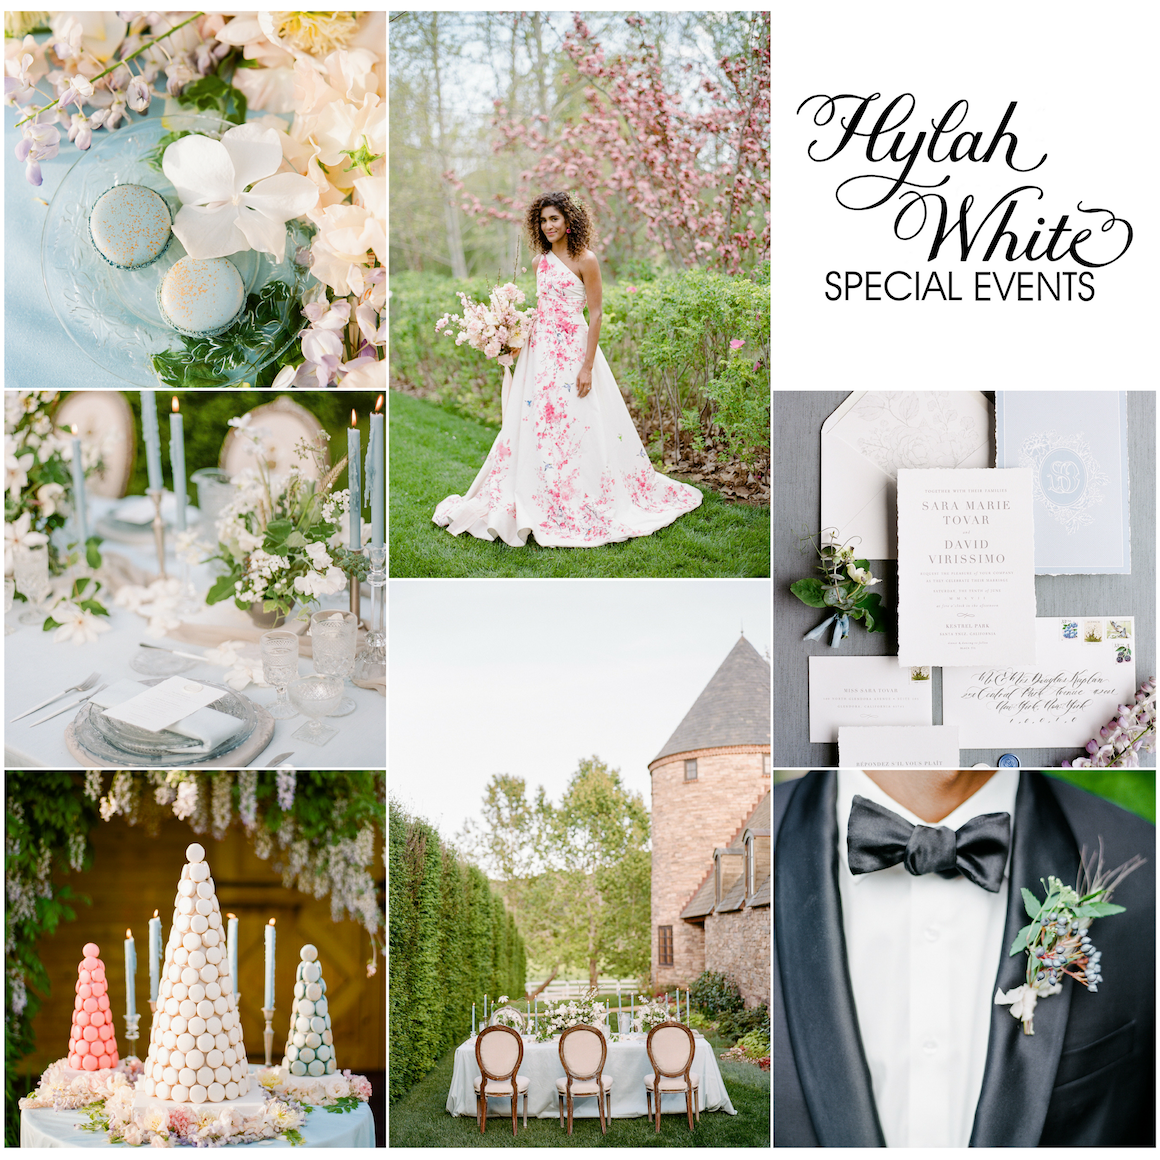 Cherry Blossom Wedding, French Countryside Wedding, Hylah White Special Events, Rebecca Yale Photo, Kestrel Park,